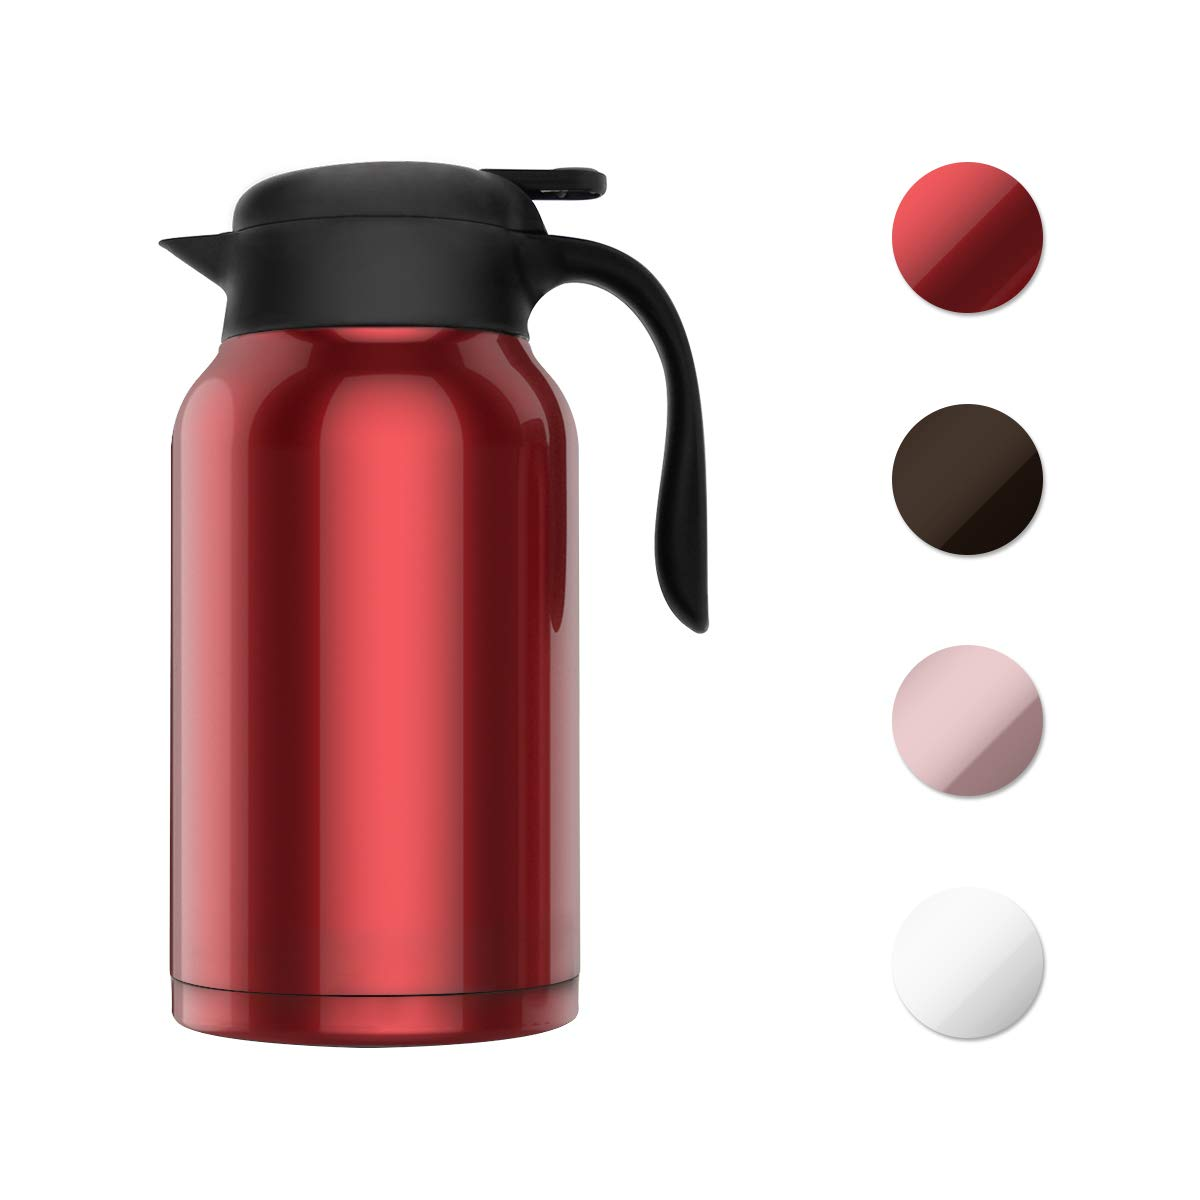 SDREAM 68 Oz Coffee Carafe Thermal Stainless Steel Double Walled Thermal Pots Hot Cold Beverage (Red) by SDREAM